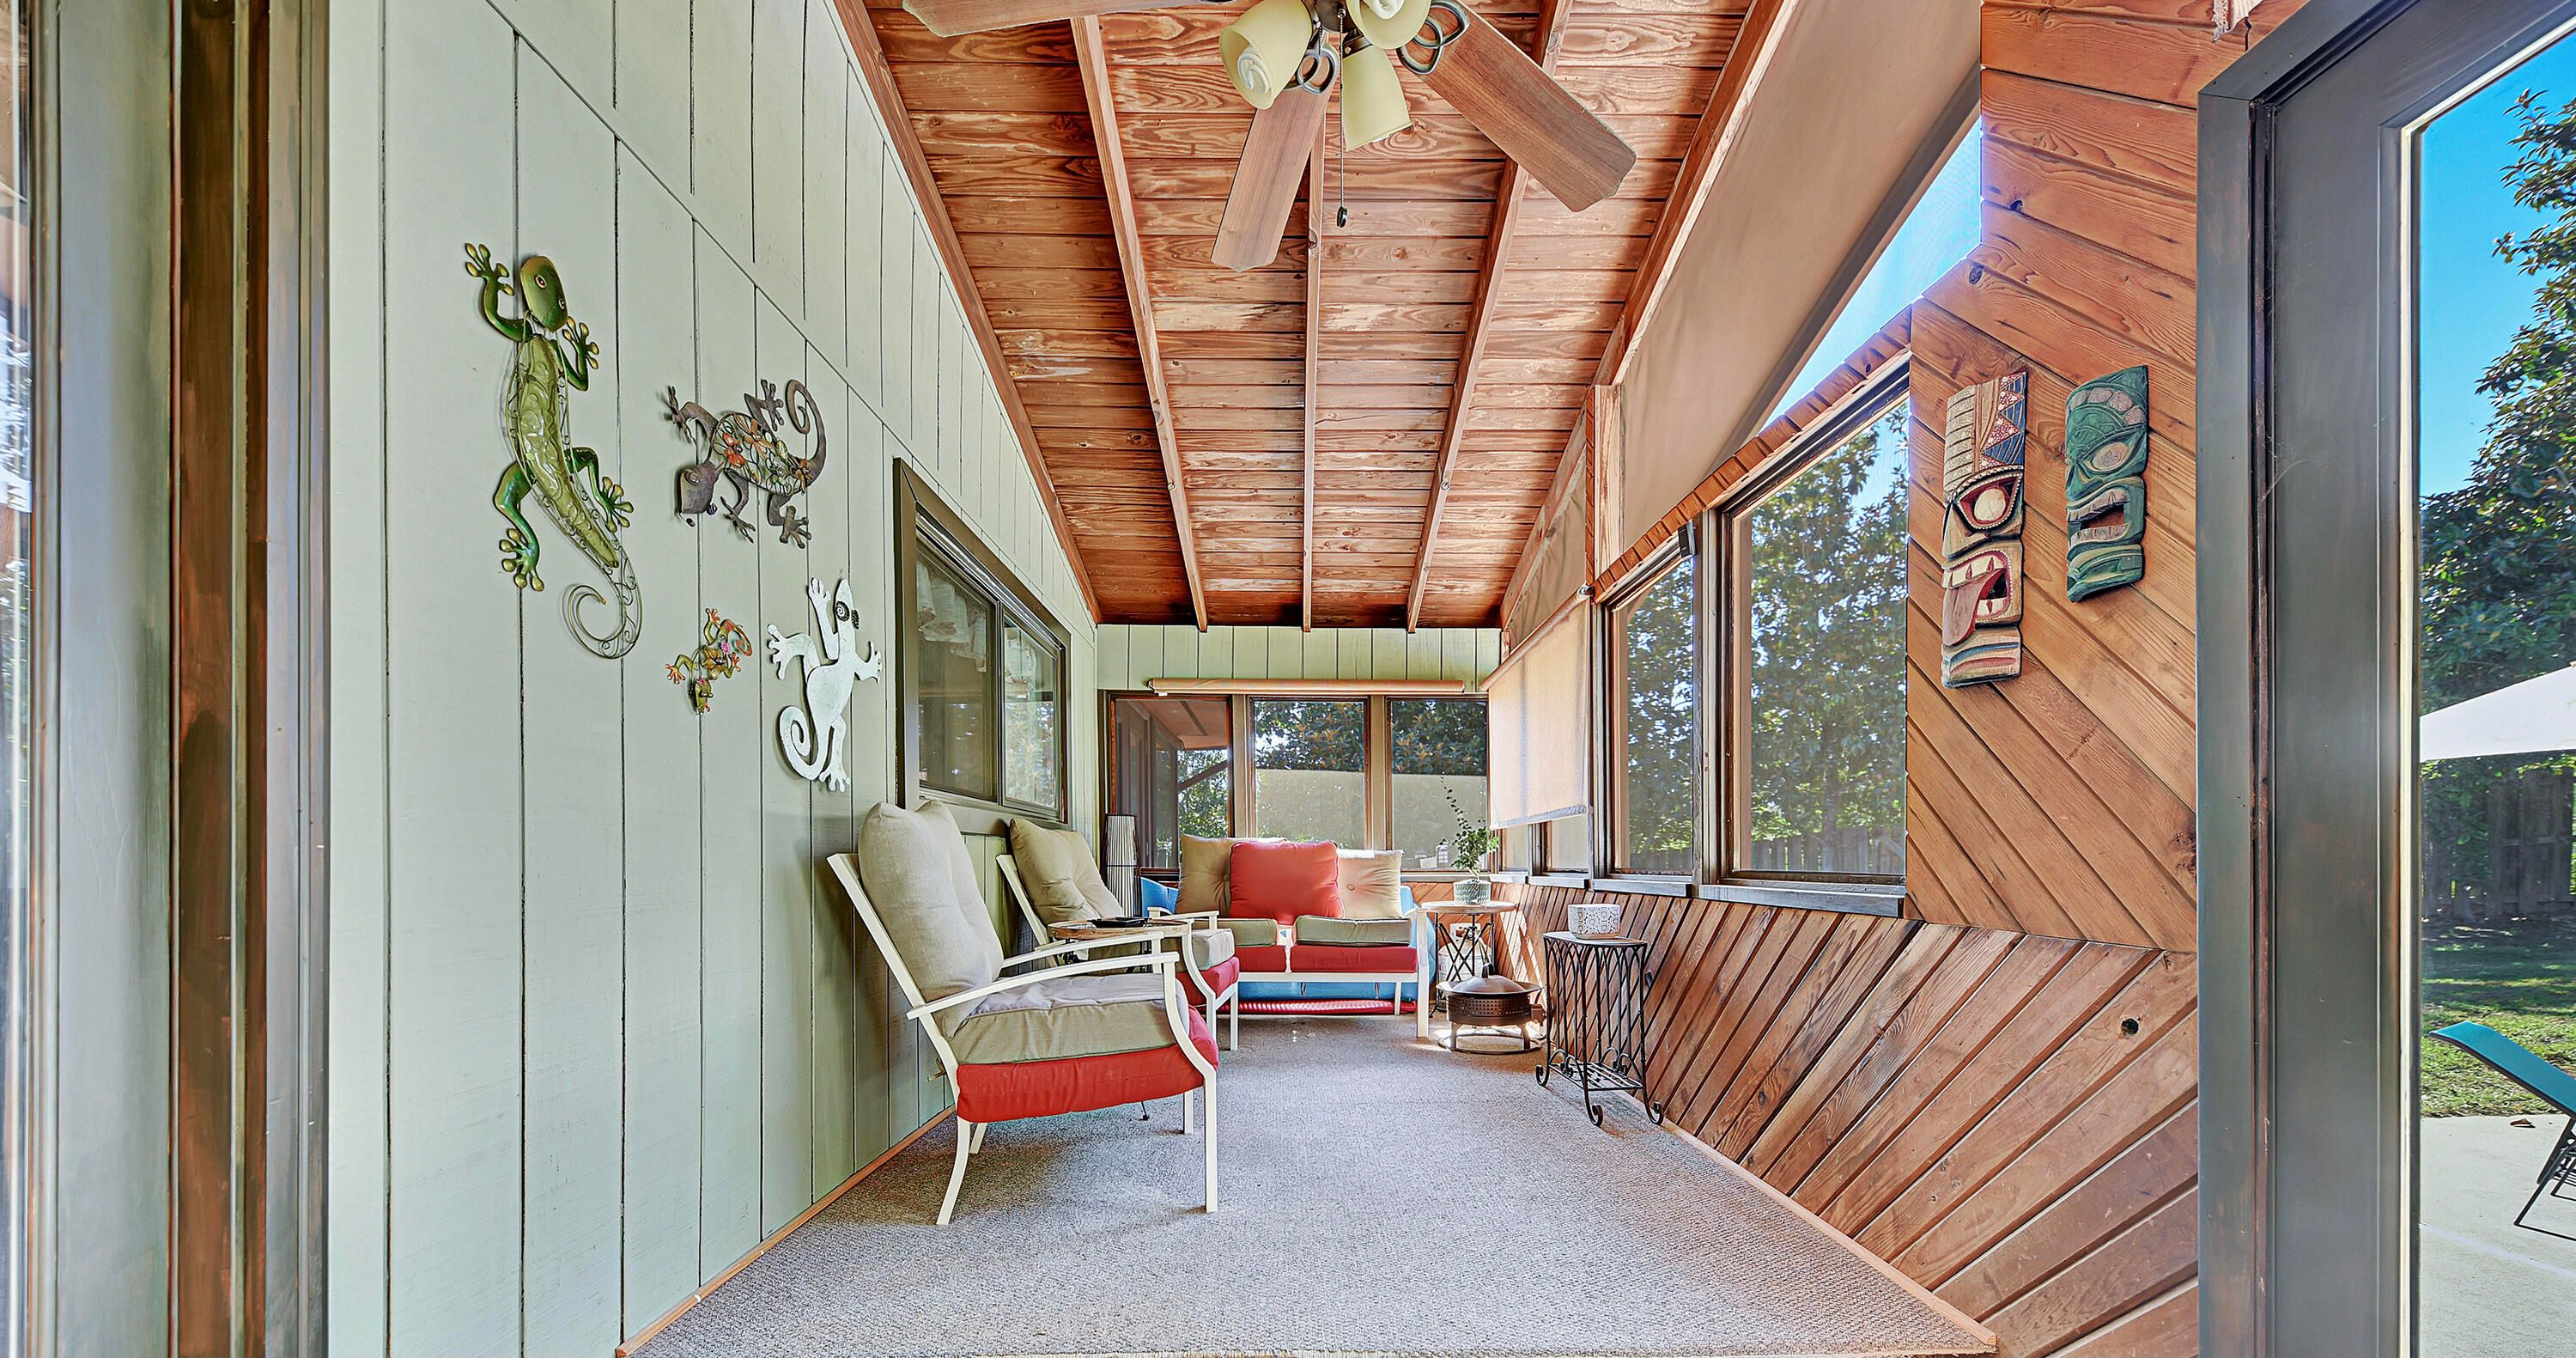 SCREENED IN PORCH OFF OF KITCHEN